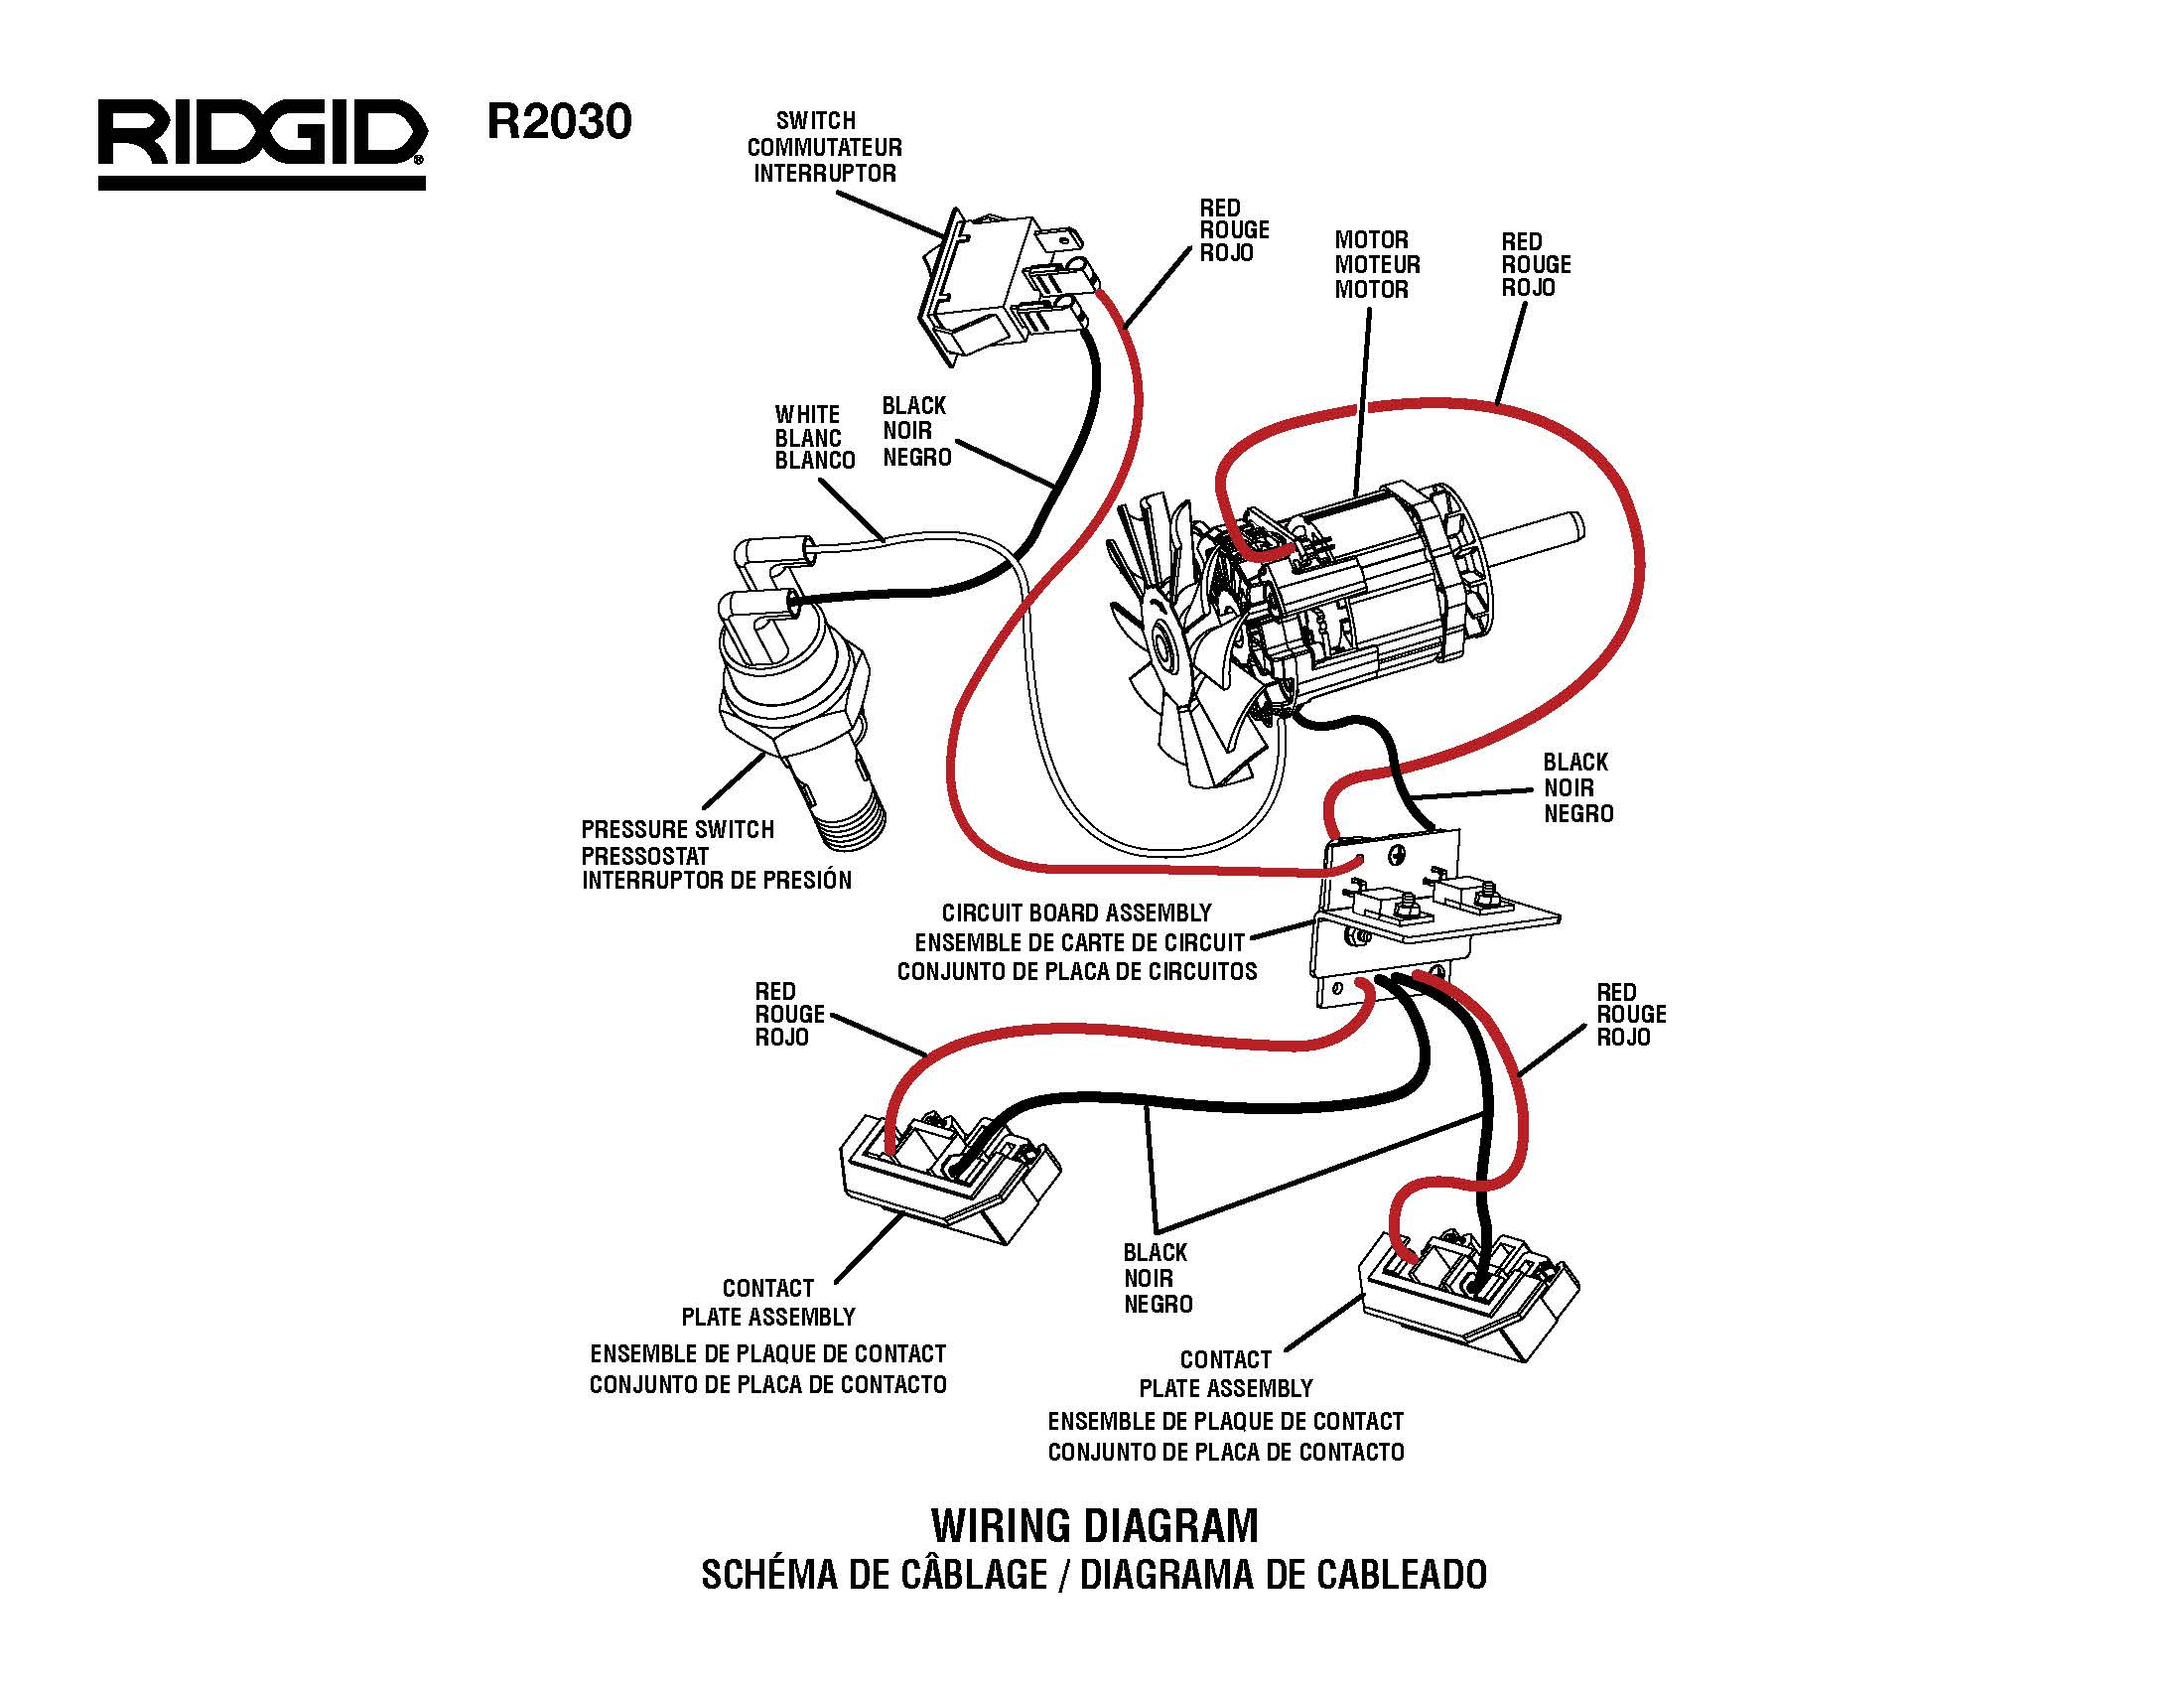 Masters Electric Motor Wiring Diagram Library Kdc Bt948hd Wire Harness Schematic Ridgid R0230 Master Tool Repair